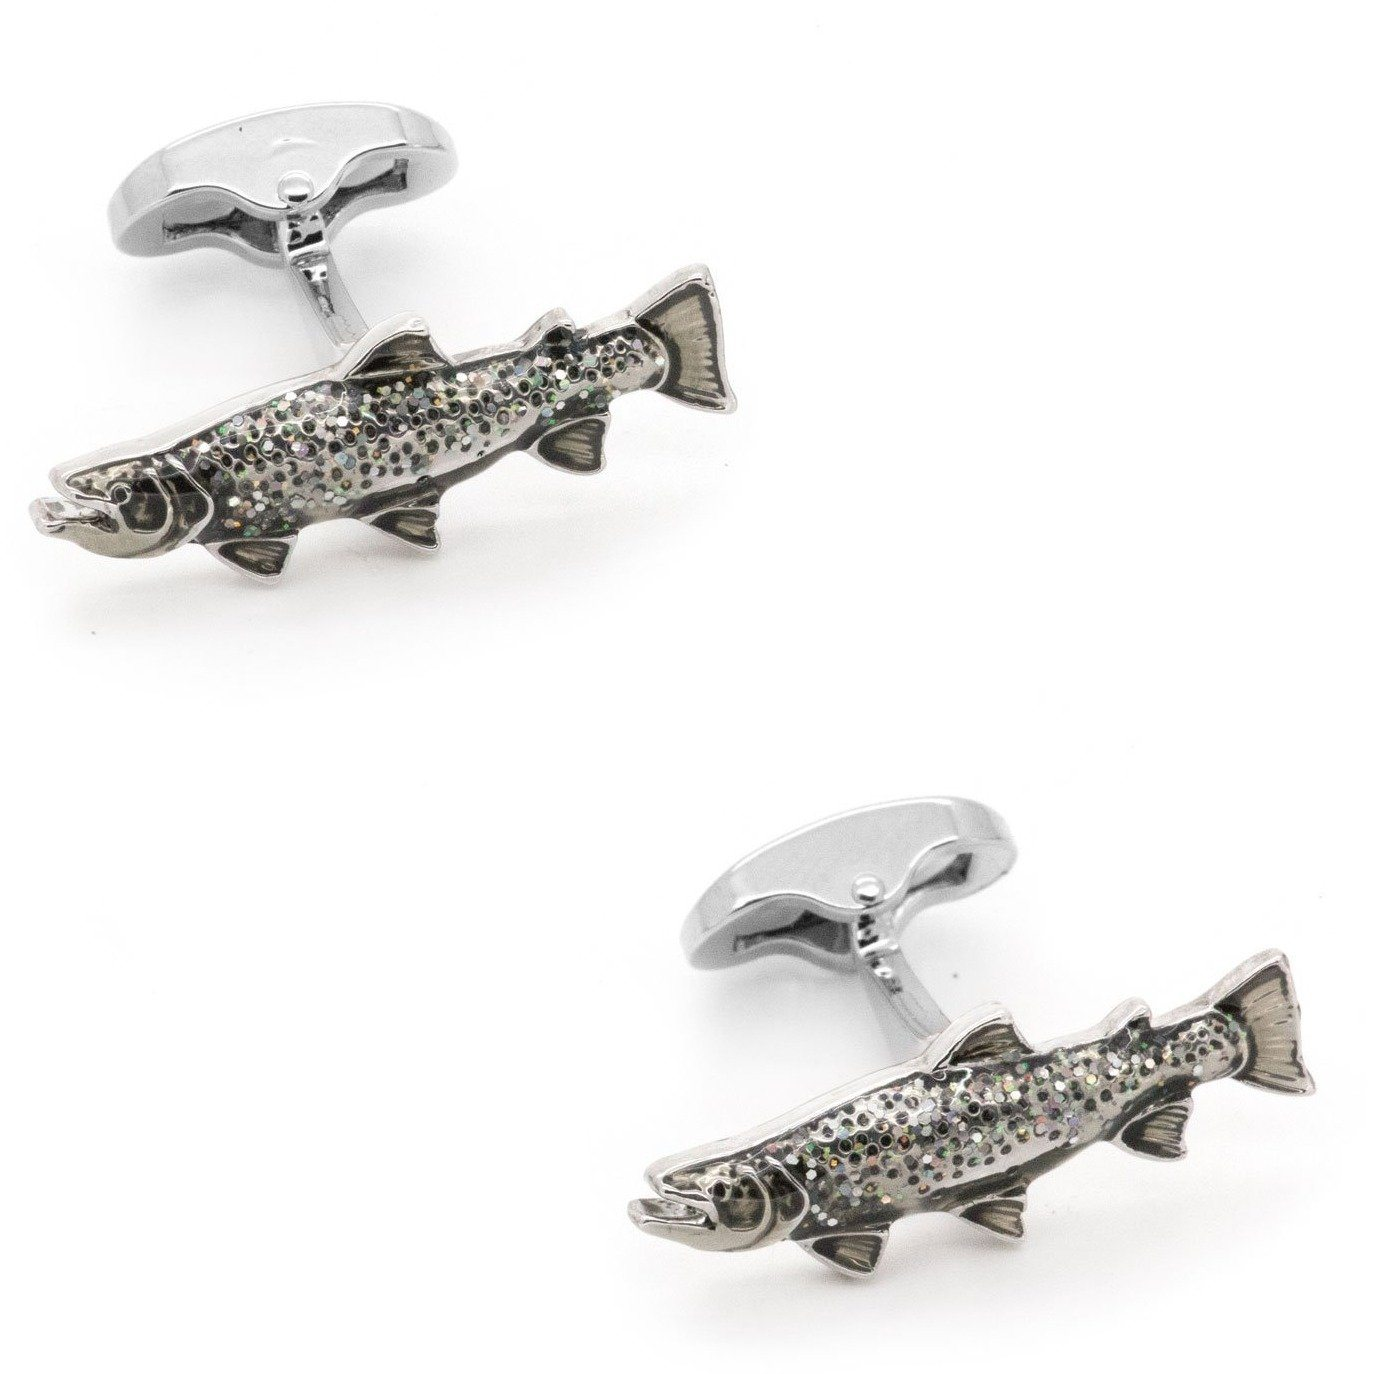 Sparkle Scaled Rainbow Trout Fish Cufflinks, Novelty Cufflinks, Cuffed.com.au, CL7101, $29.00